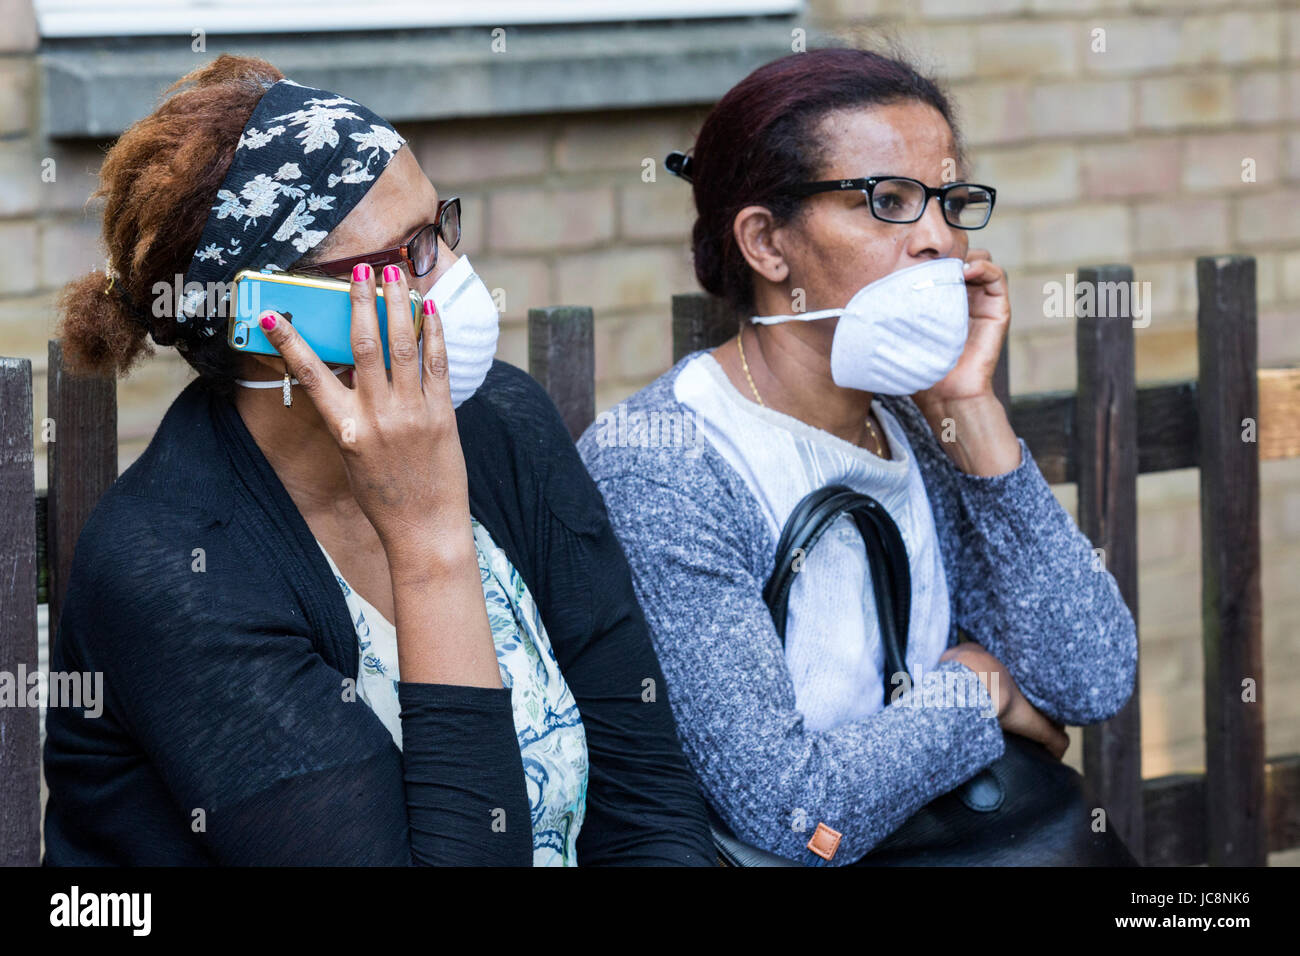 London, UK. 14 June 2017. After the fire in the 27-storey, 120 flat, Grenfell Tower in North Kensington, Notting - Stock Image